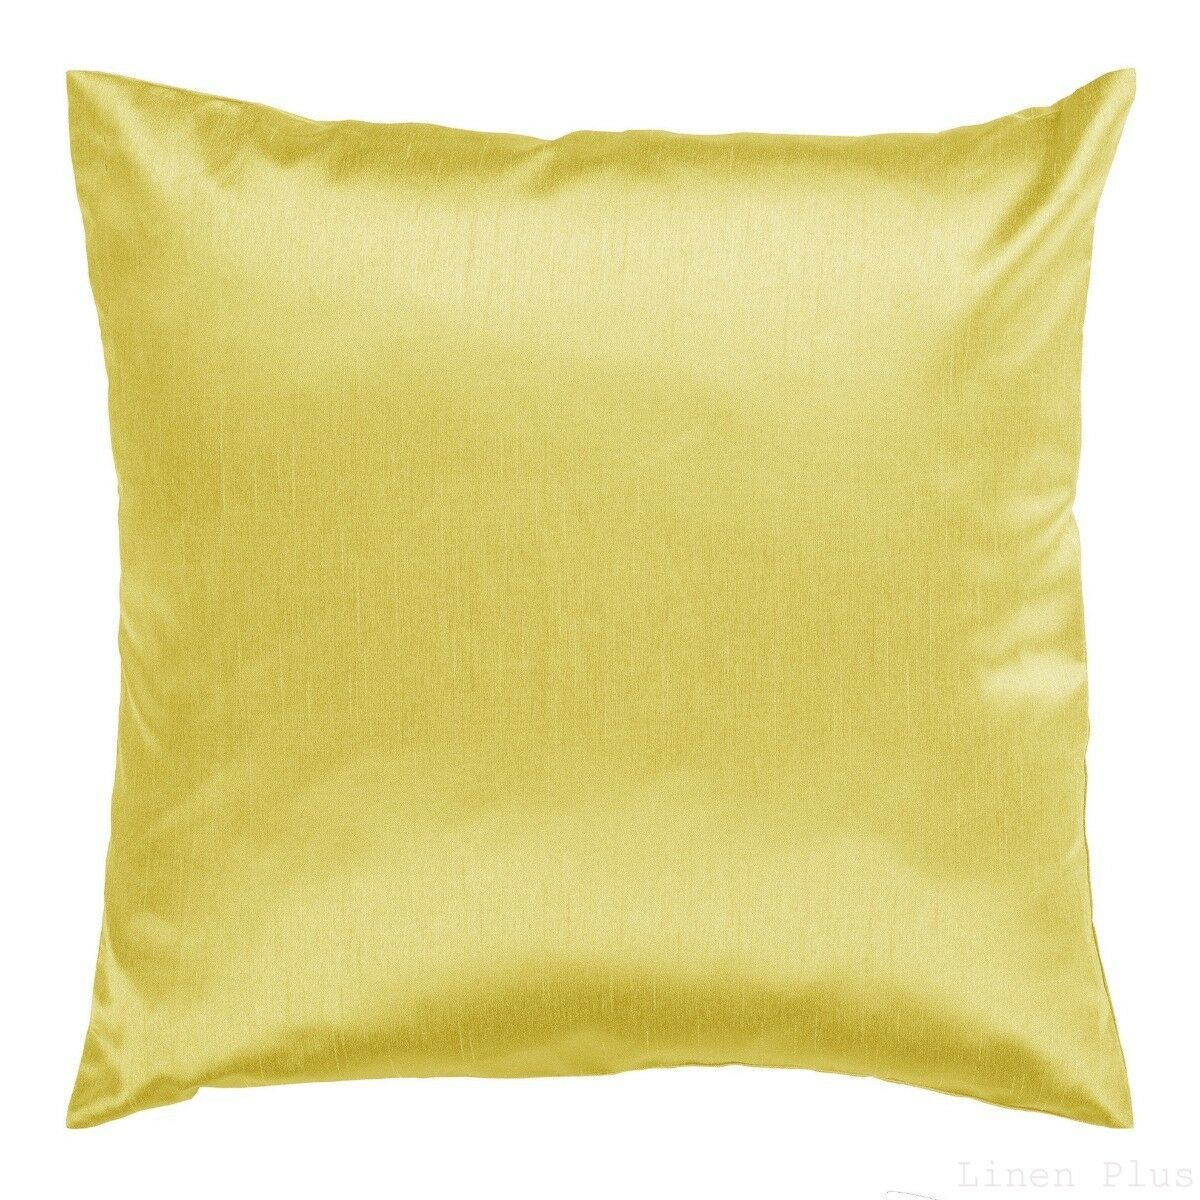 Yellow Cover Case Decorative Pillow Zippered Closure 18″ x 18″ 2 Piece Bedding